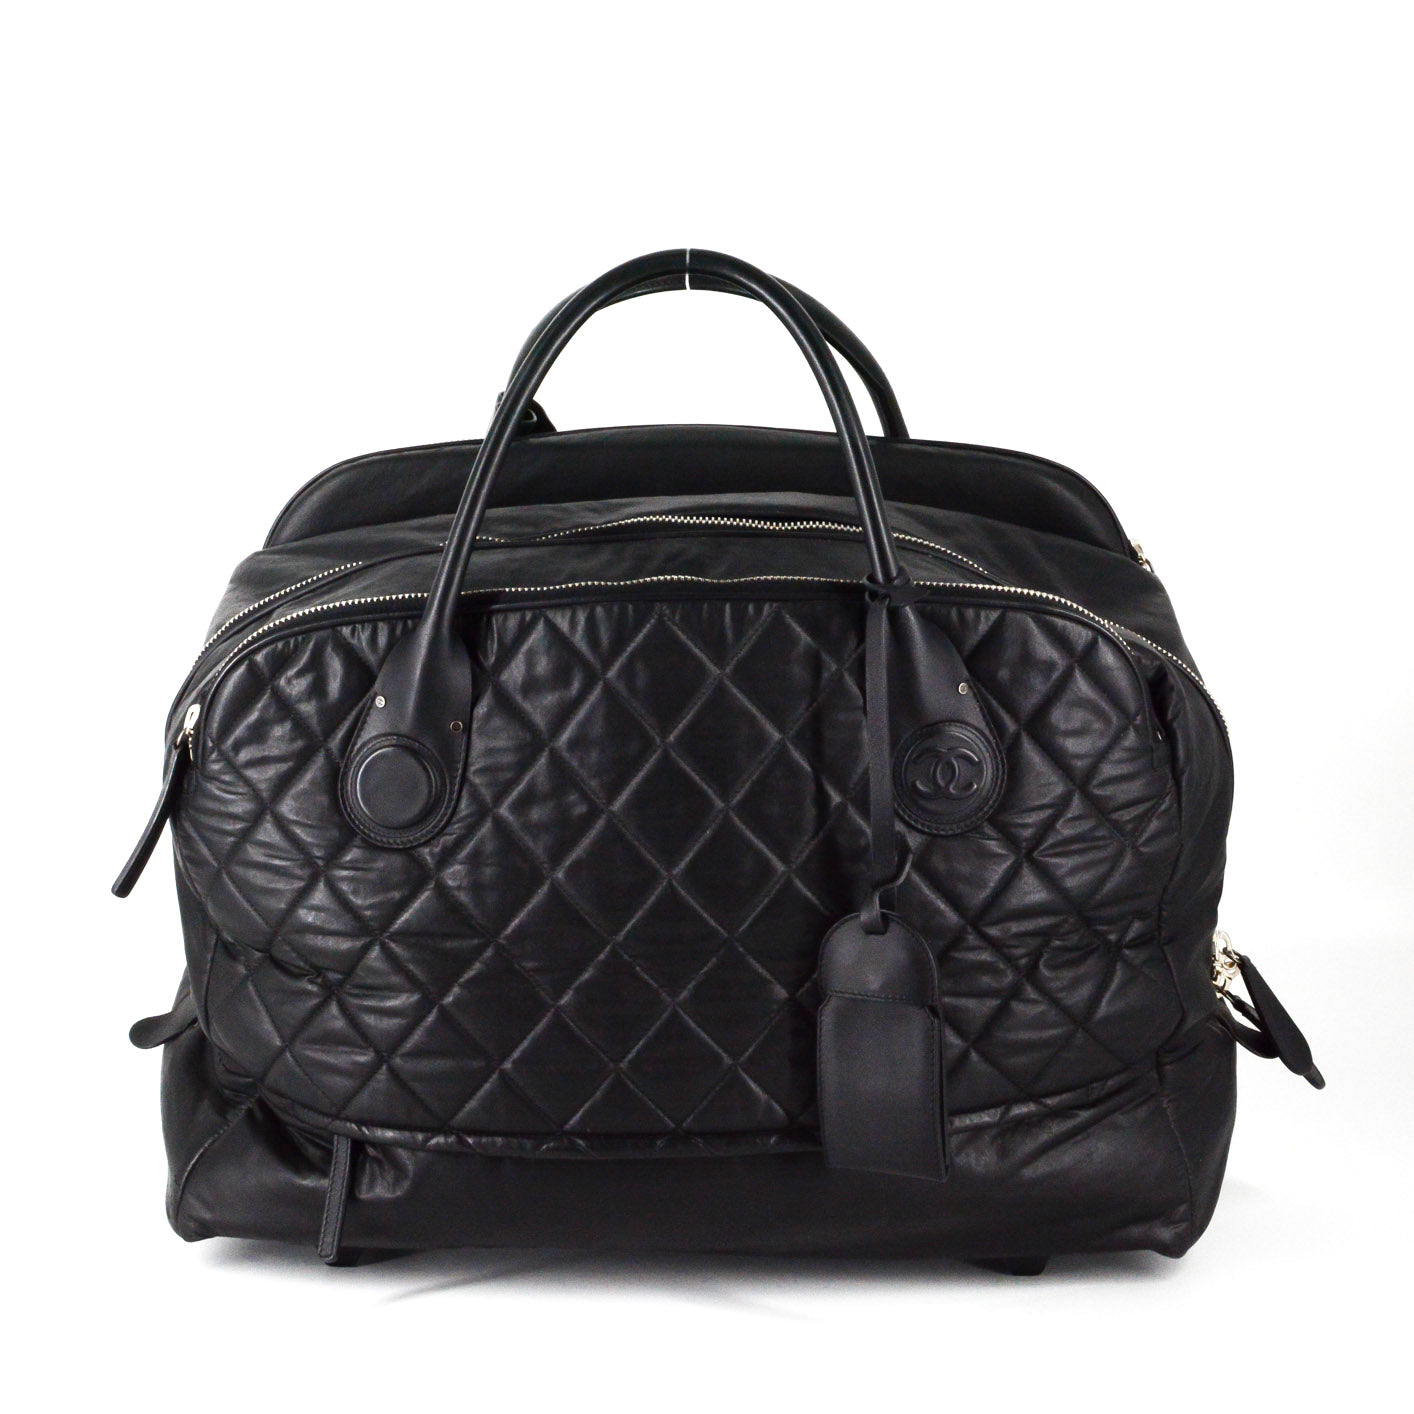 38fa5ebe9c45 Please try a little later. Fine, Take Me Back. ×. CHANEL Quilted Rolling  Weekender Trolley